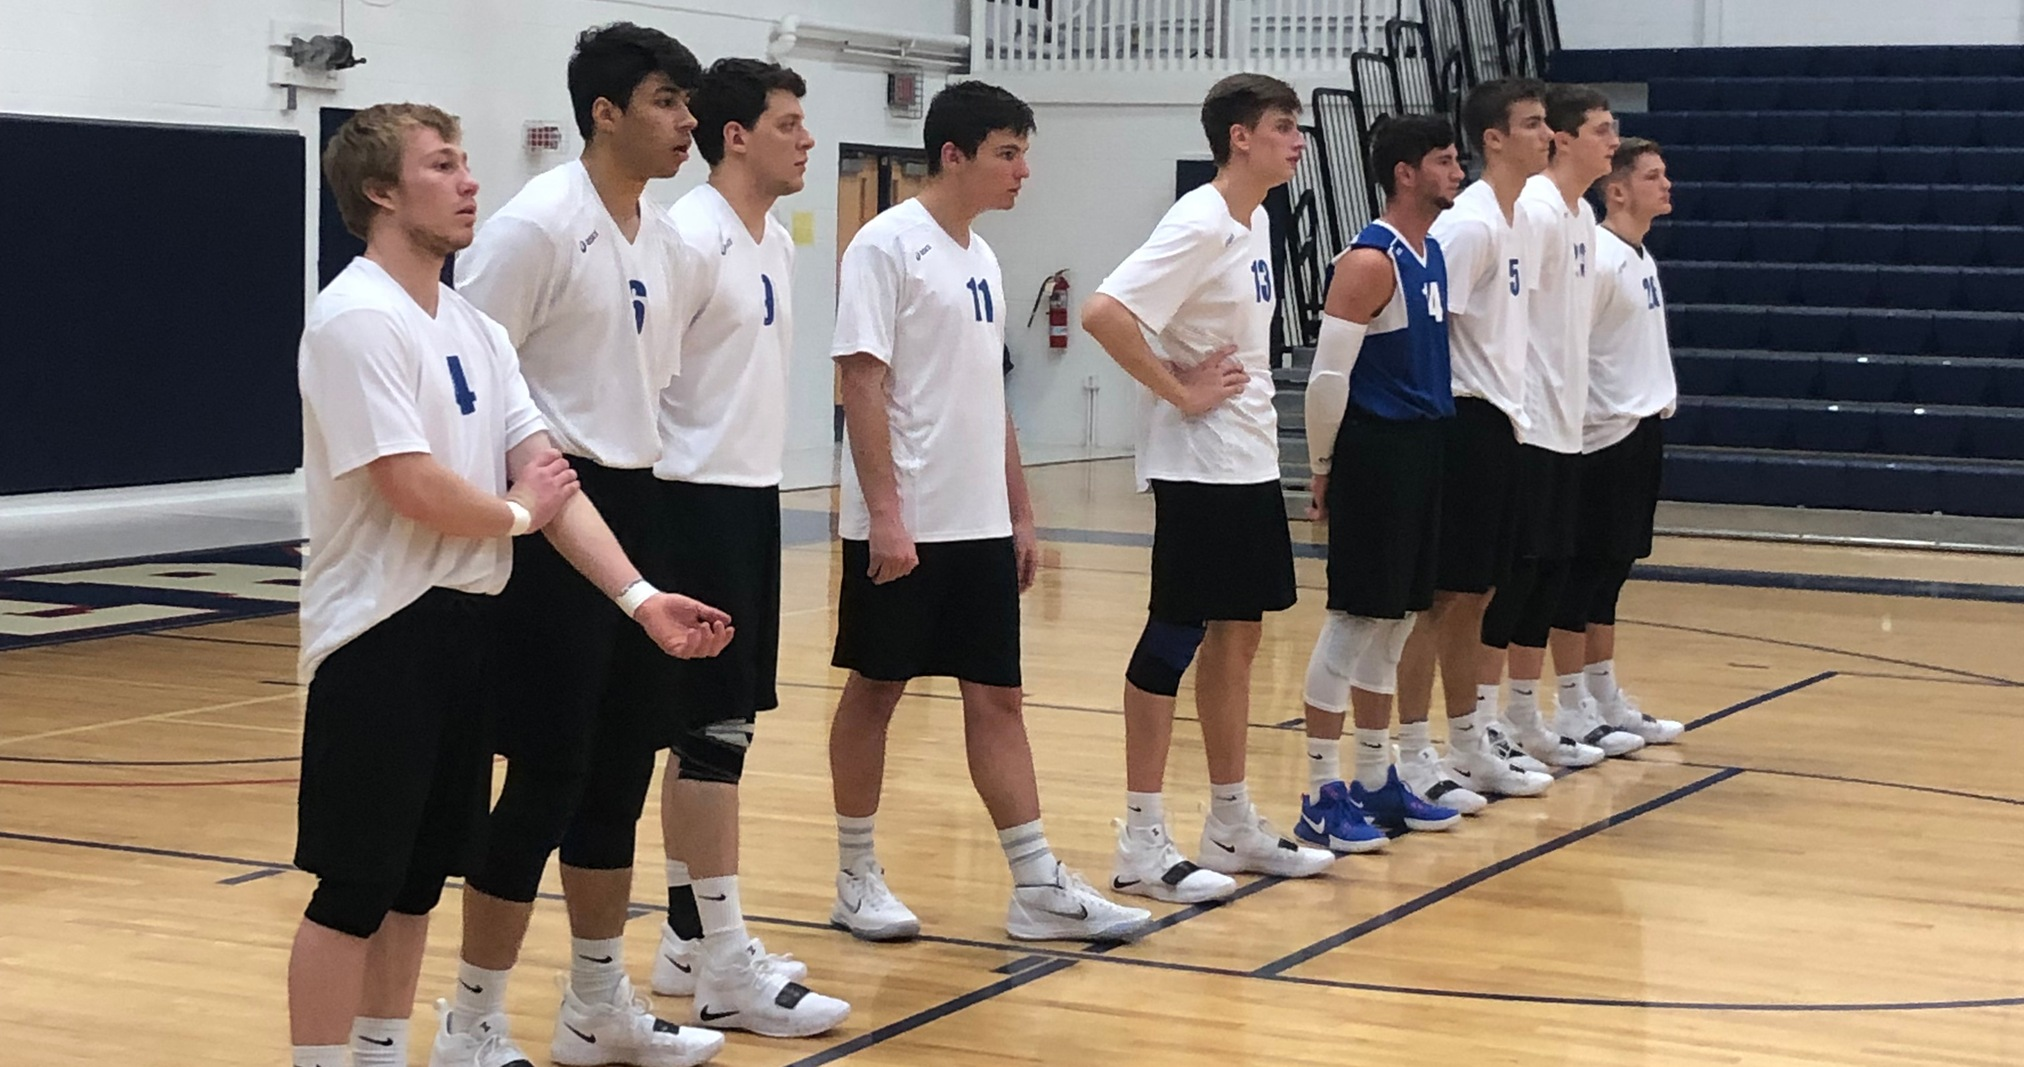 Men's Volleyball Drops Season Opener, 3-0, to Geneva